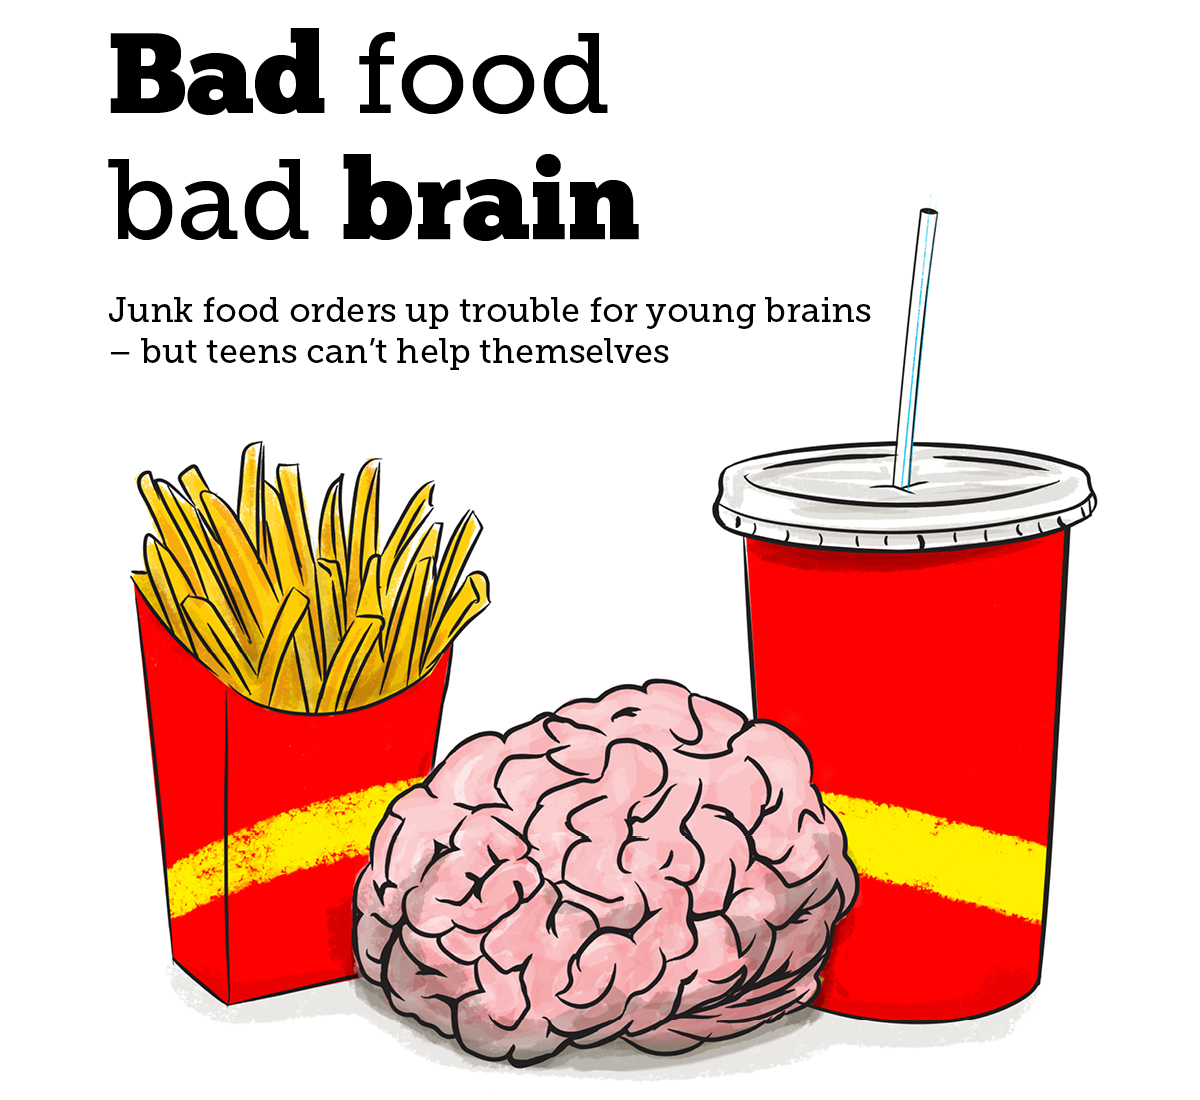 Bad food bad brain graphic - Junk food orders up trouble for young brains but teens can't help themselves